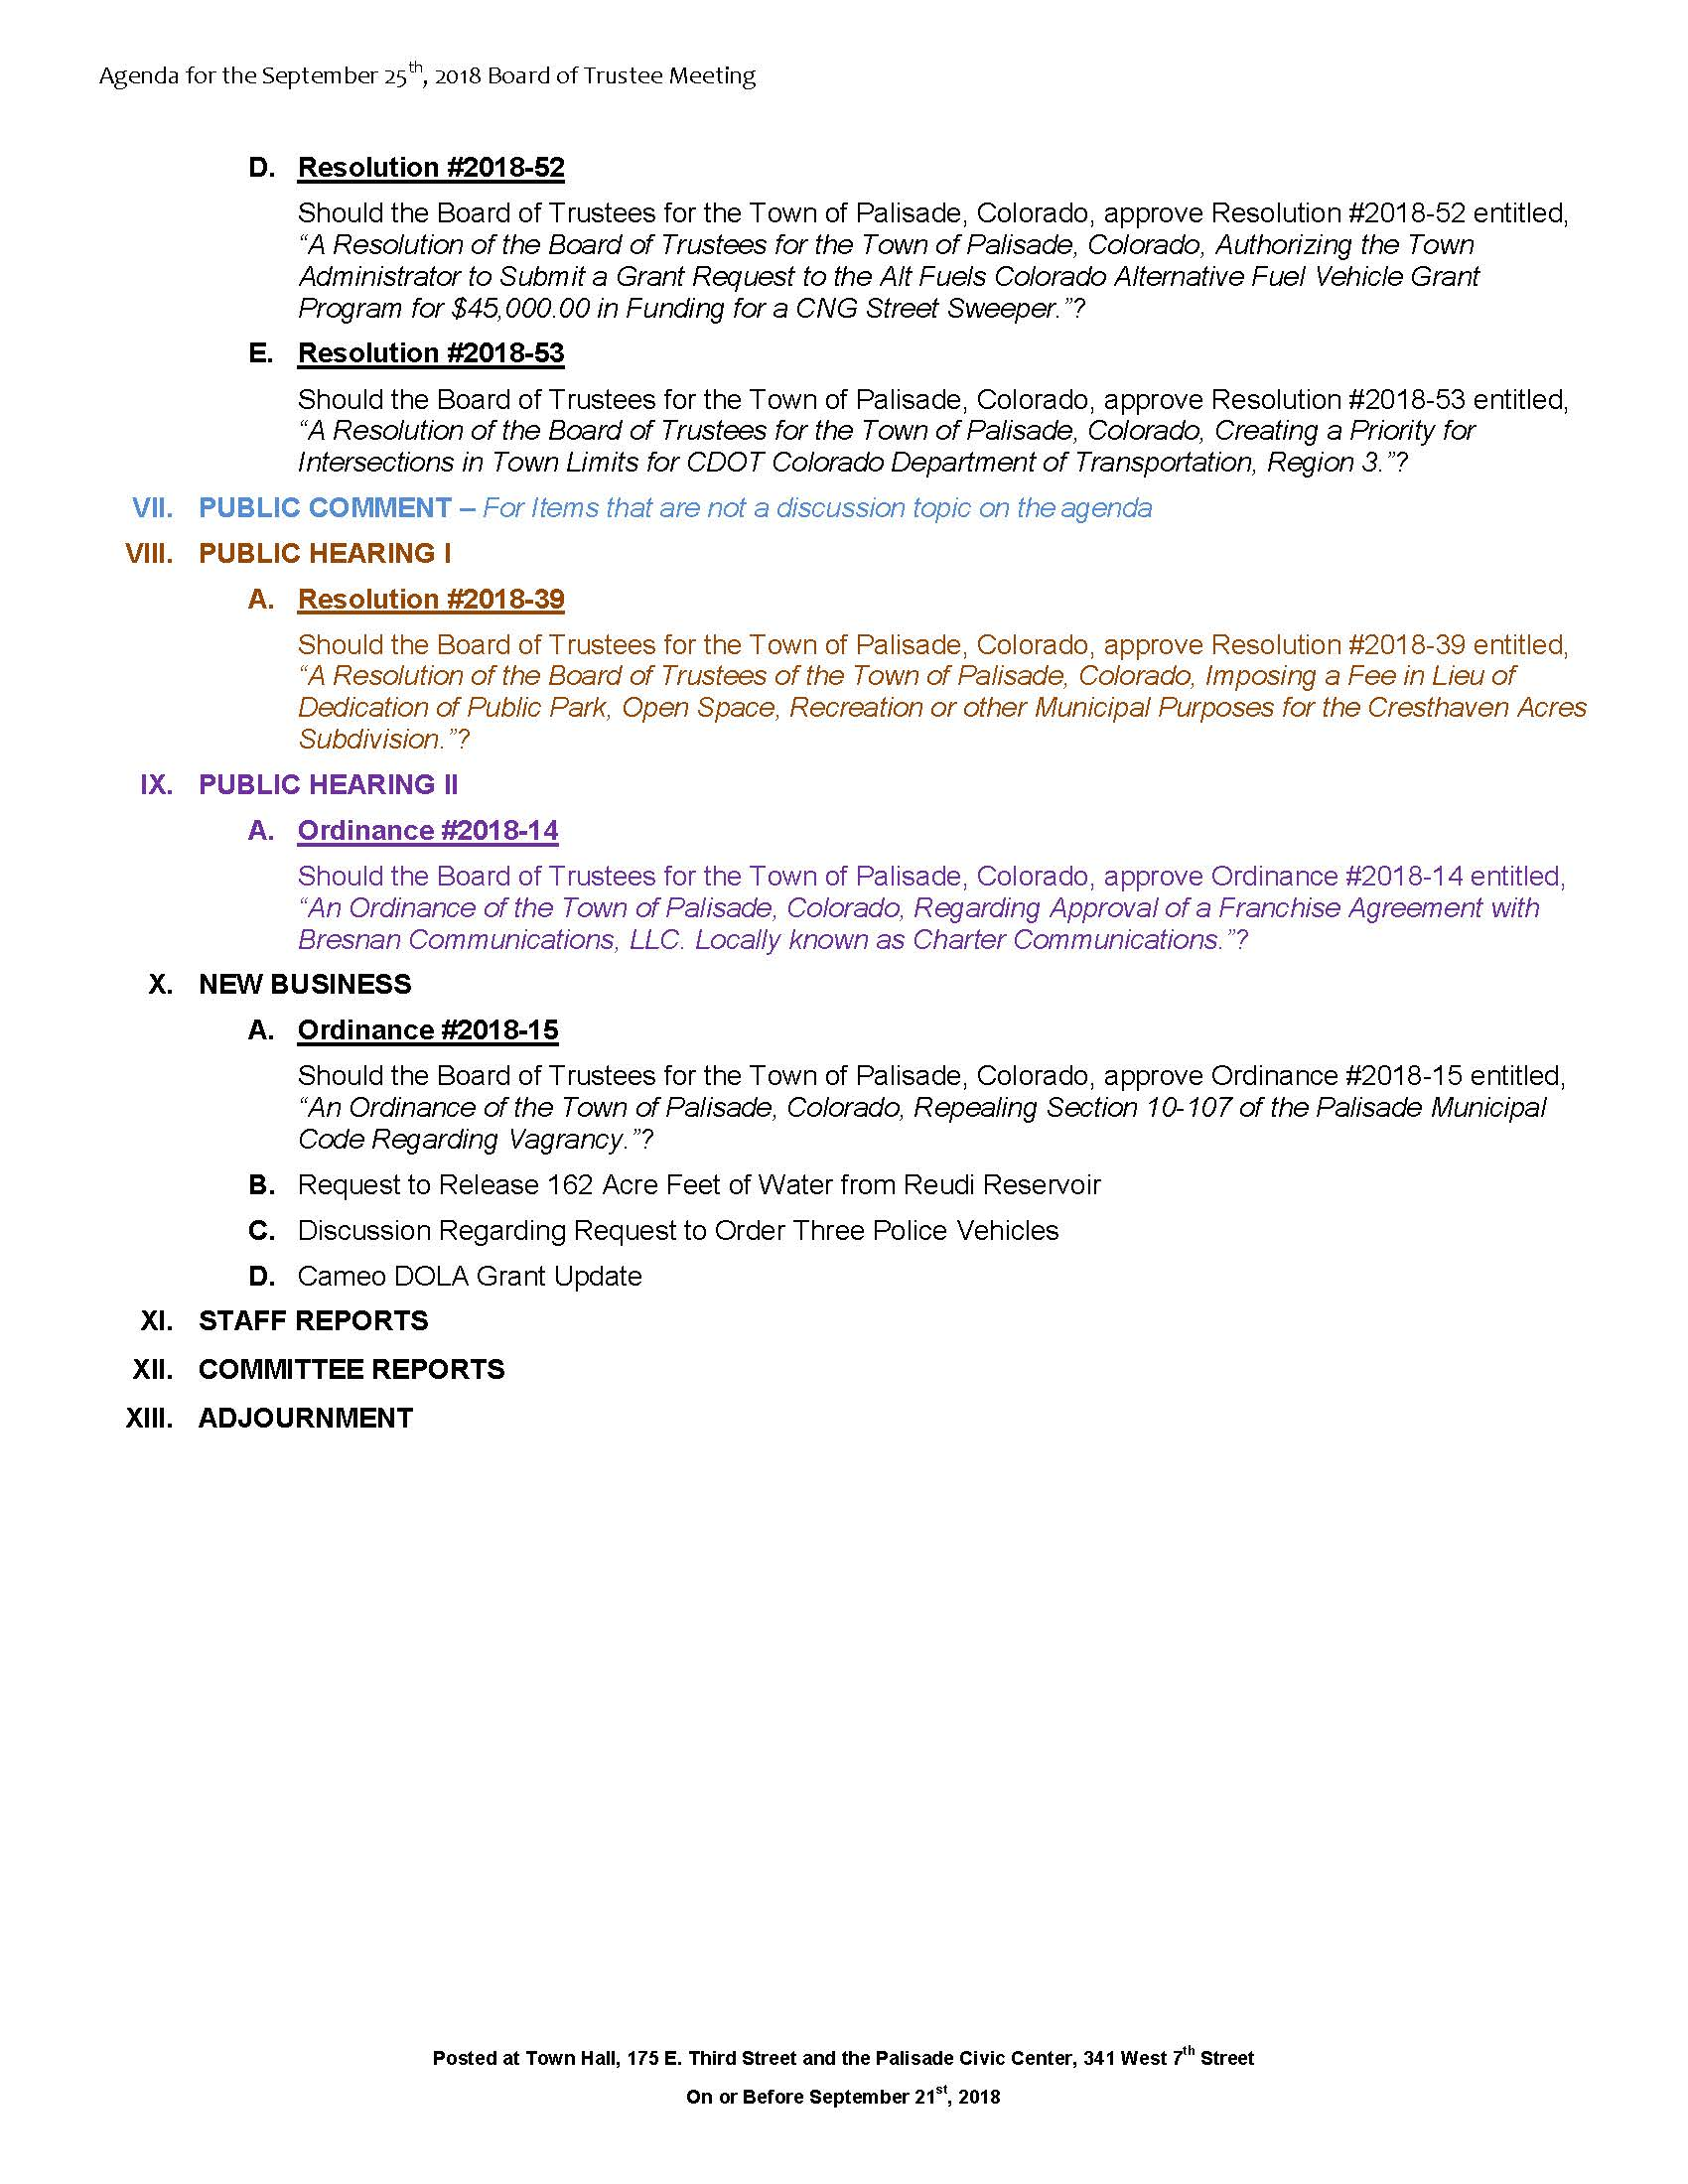 September 25th 2018 Board Meeting Agenda Page 2